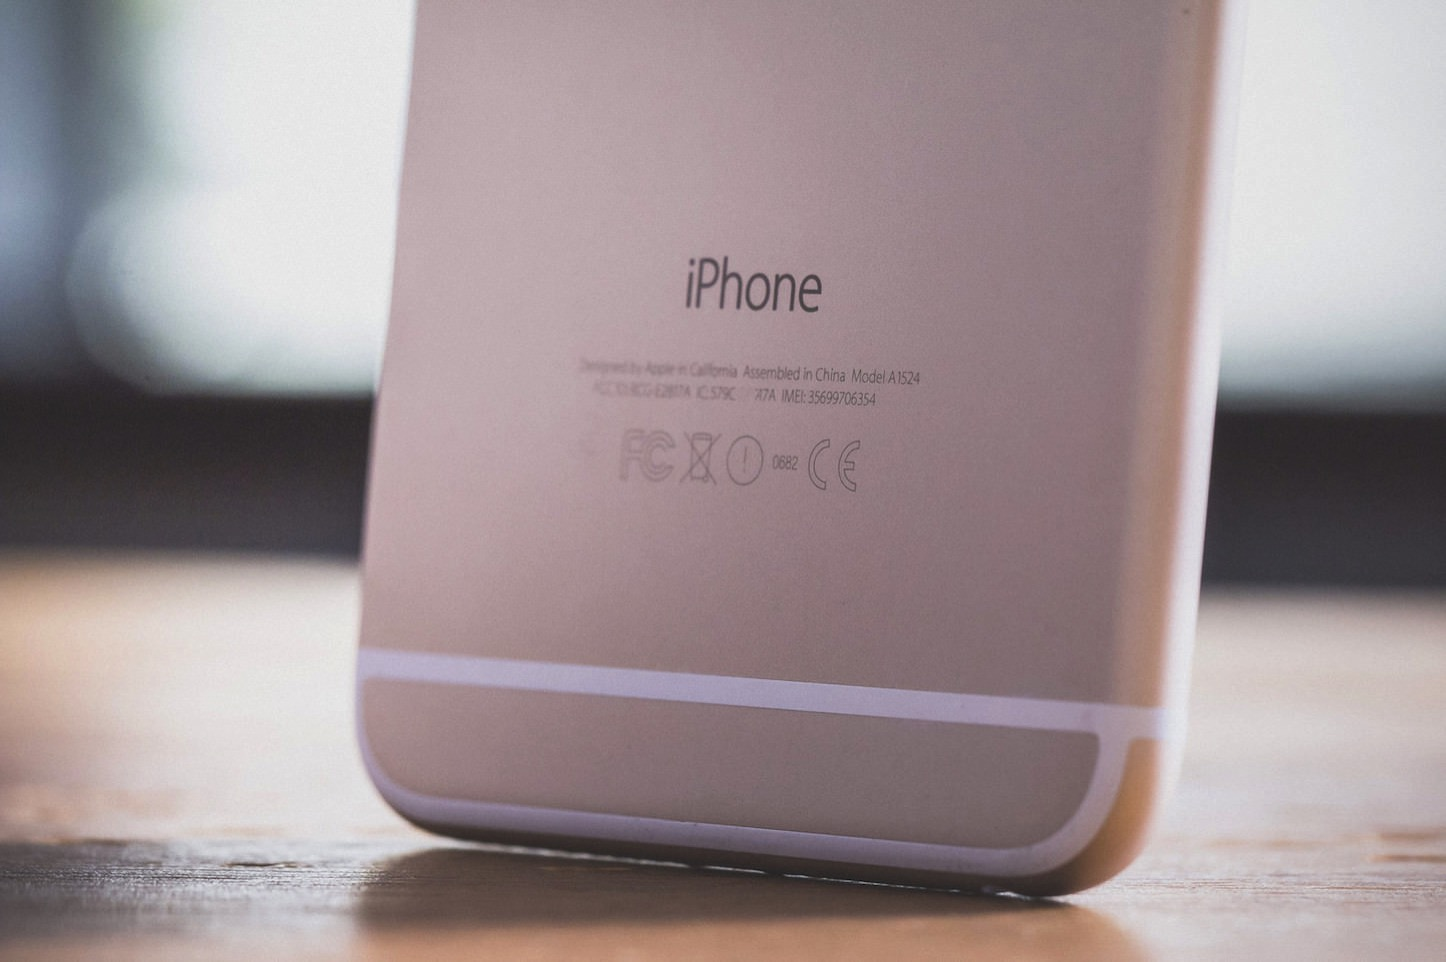 Iphone6 logo and etc